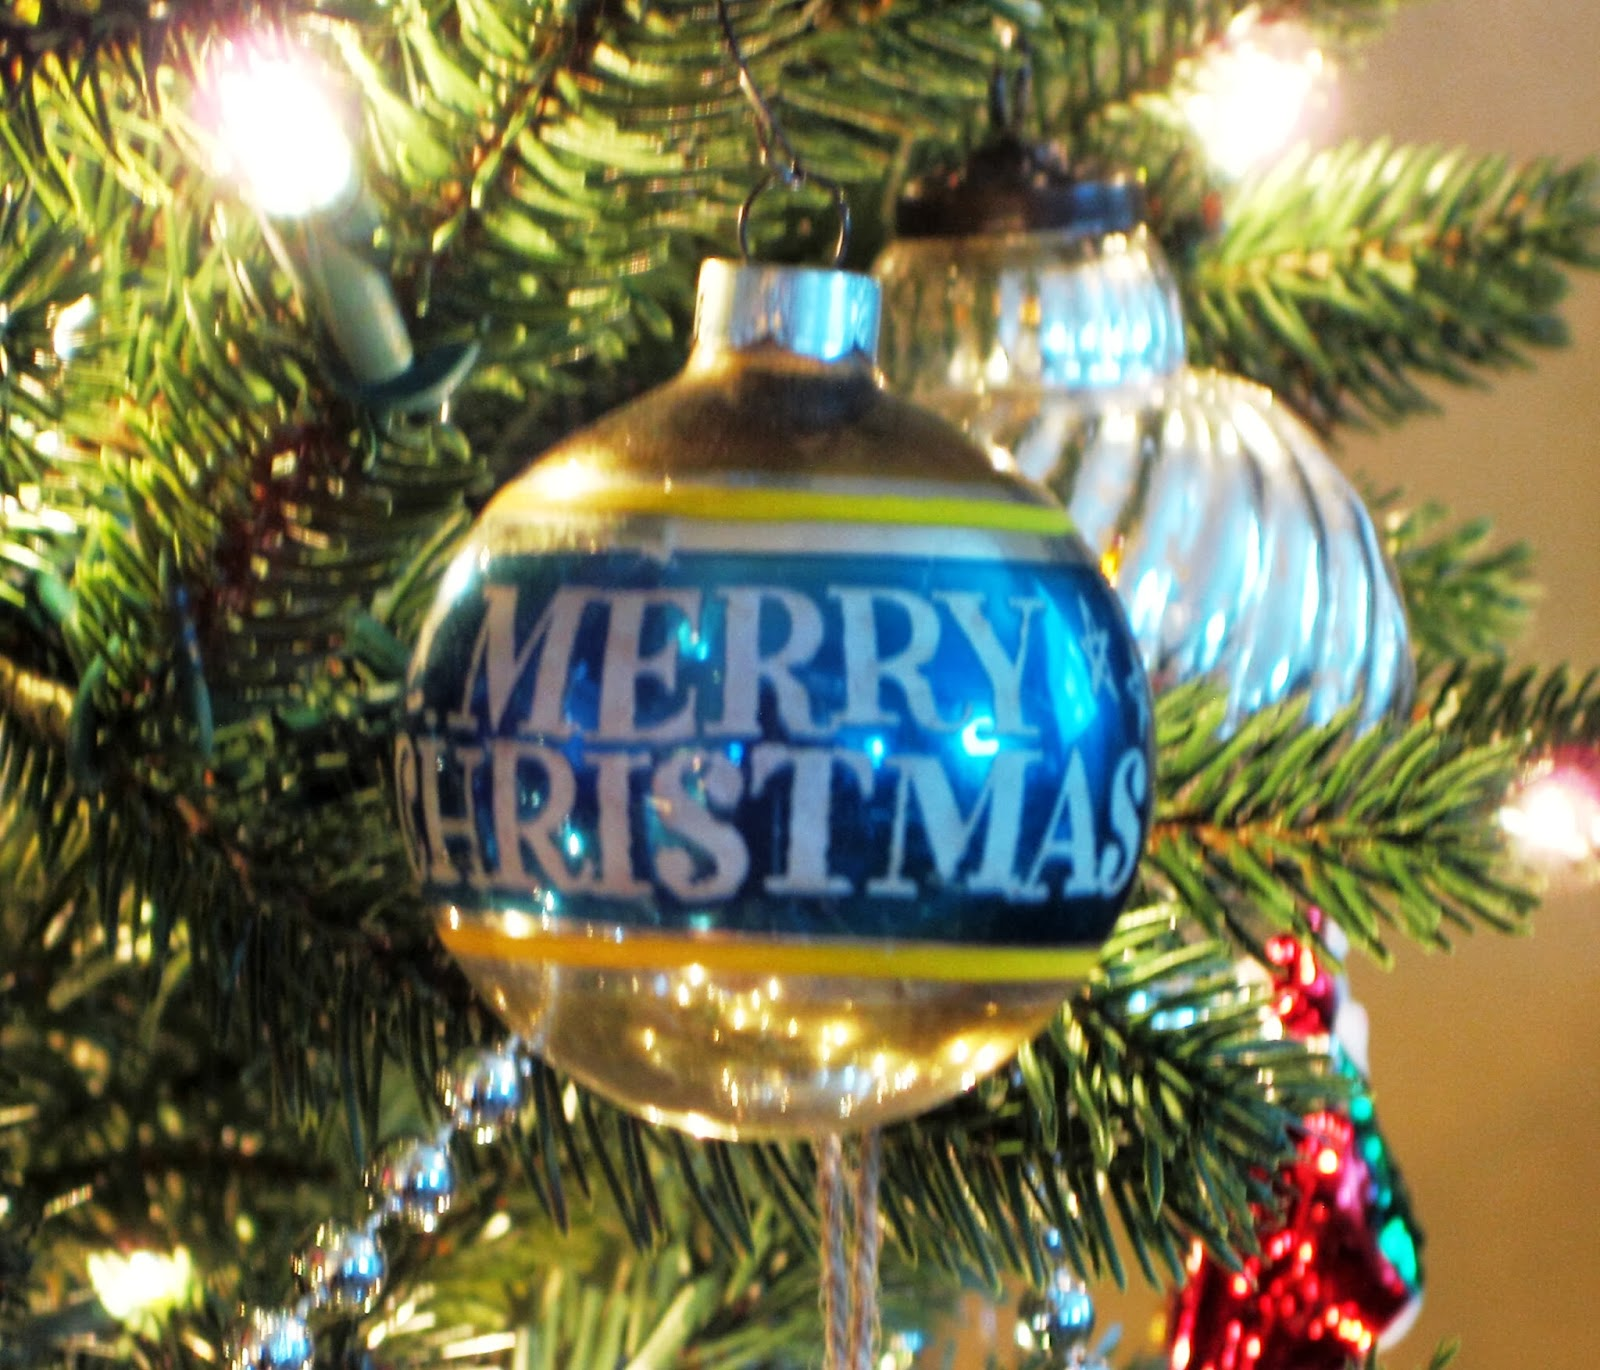 Vintage looking christmas ornaments - I Love The Look Of Vintage Glass Christmas Ornaments This Year For The First Time My Tree Is Outfitted Entirely In Vintage And Vintage Looking Glass